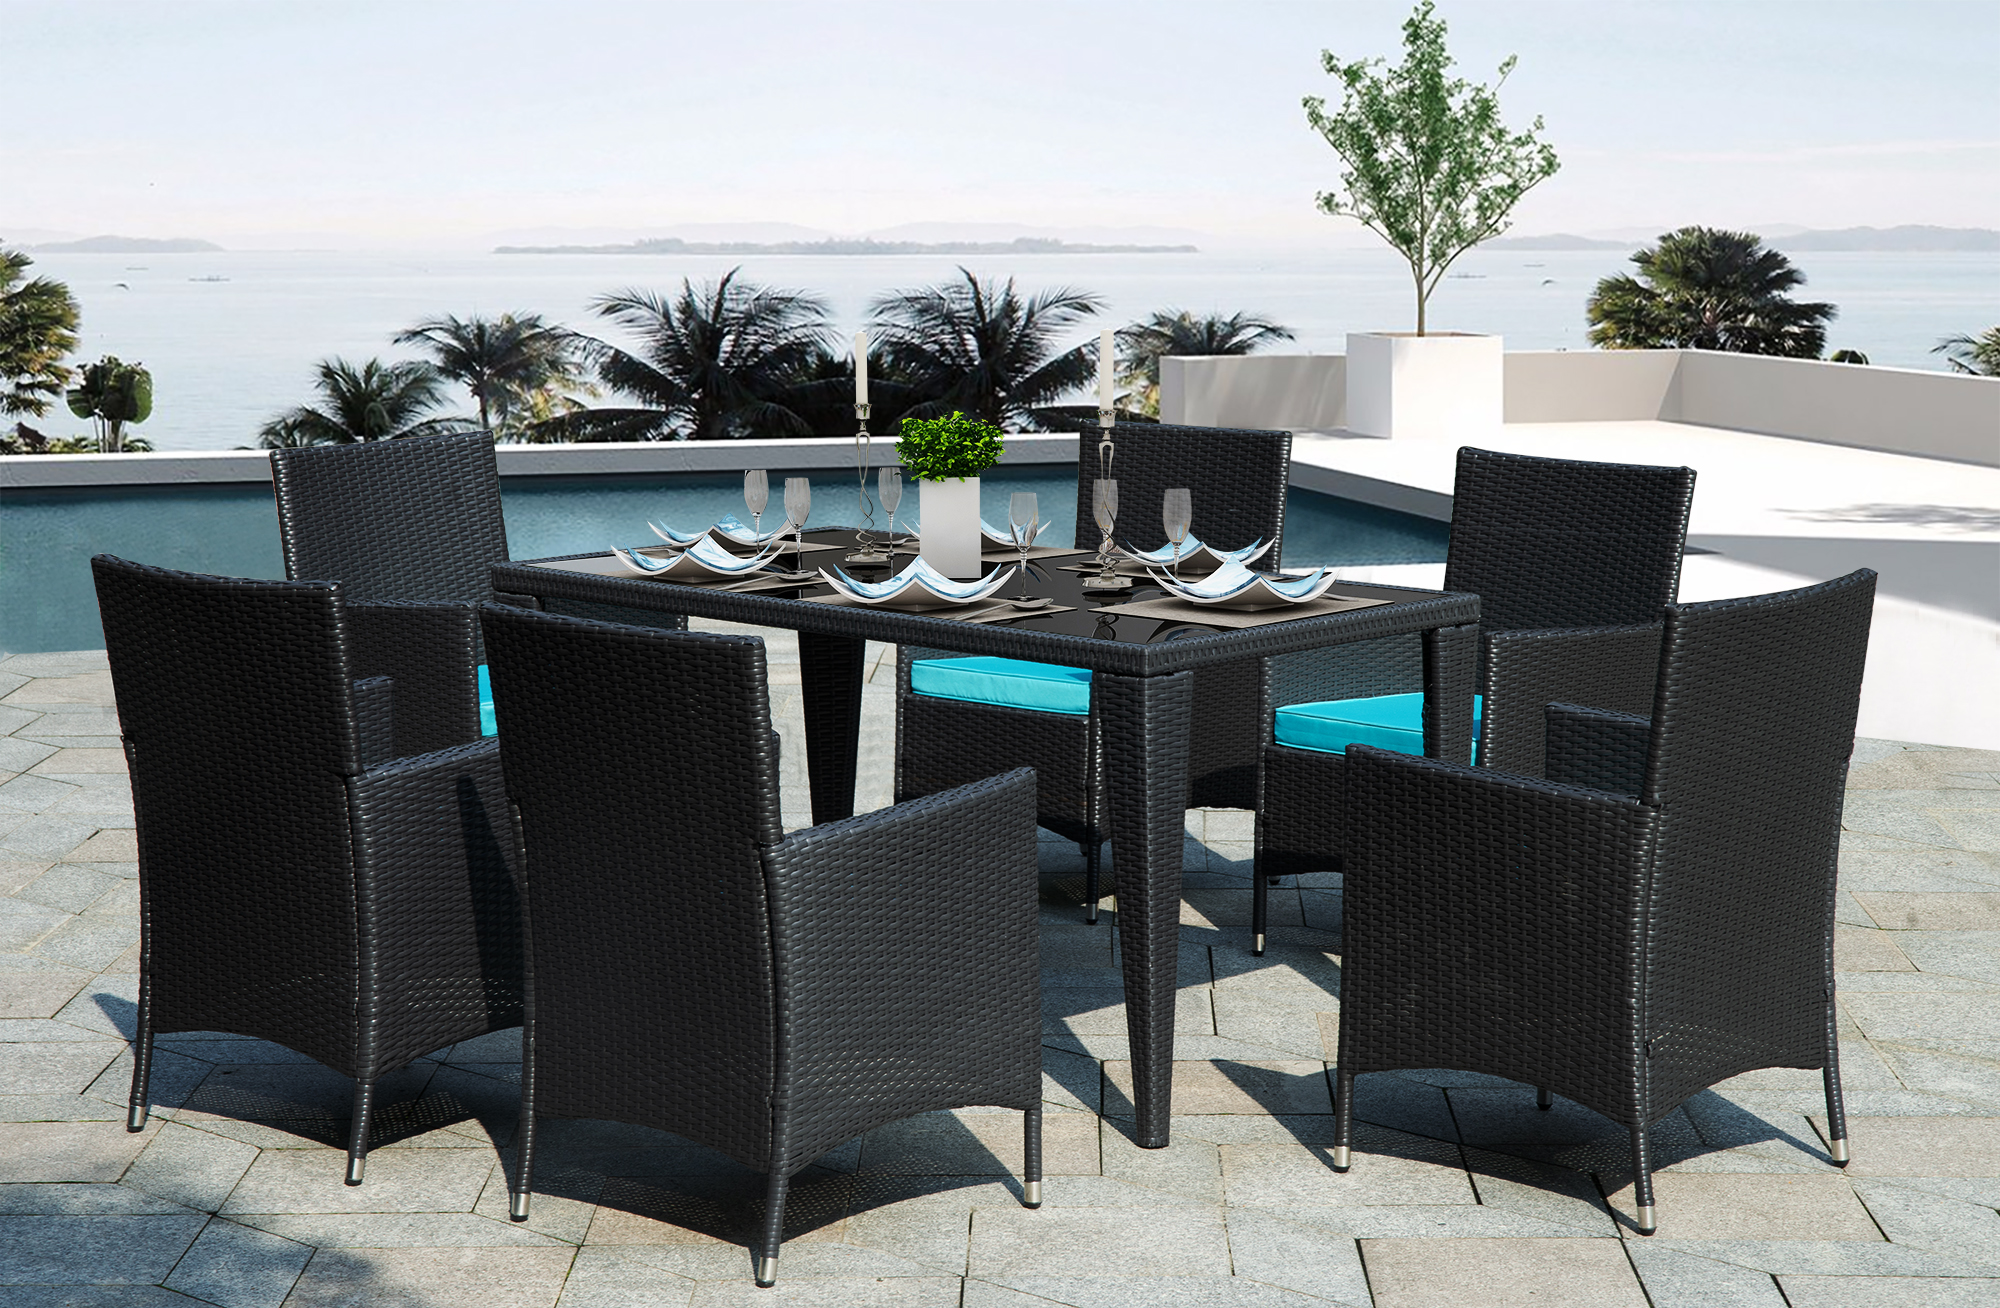 patio dining set seats 6 7 piece outdoor patio furniture set with glass dining table all weathe rectangle patio sofa furniture set with washable